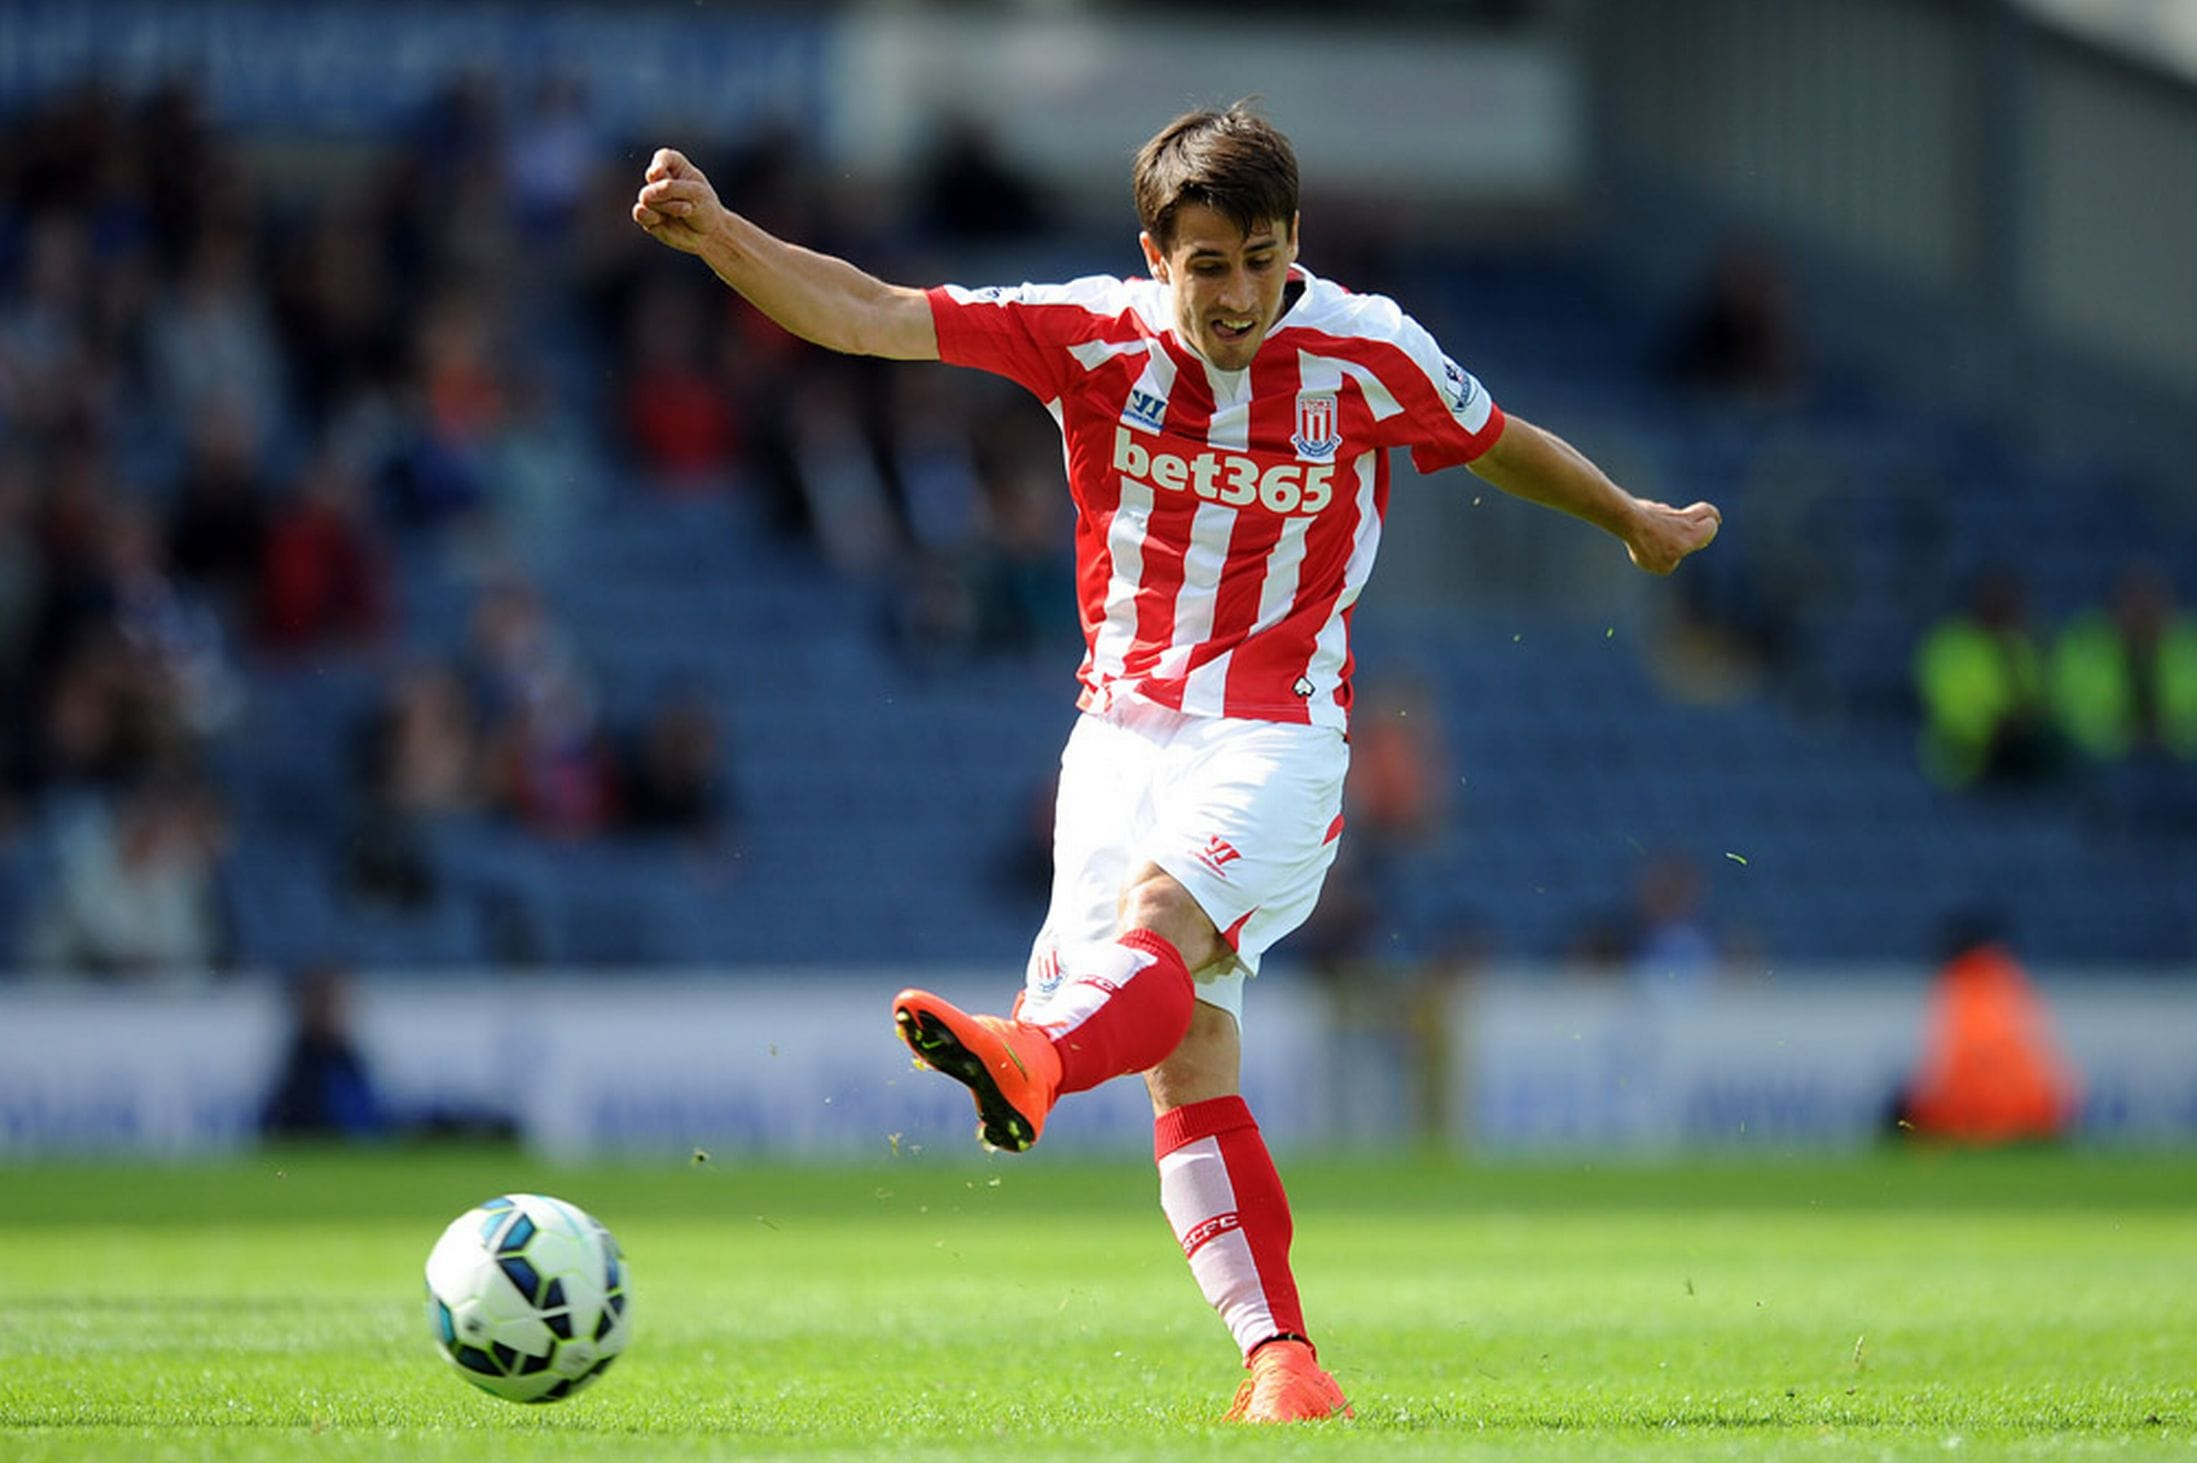 Stoke City manager Mark Hughes has insisted the club will not sell former Barcelona forward Bojan Krkic during the January transfer window.